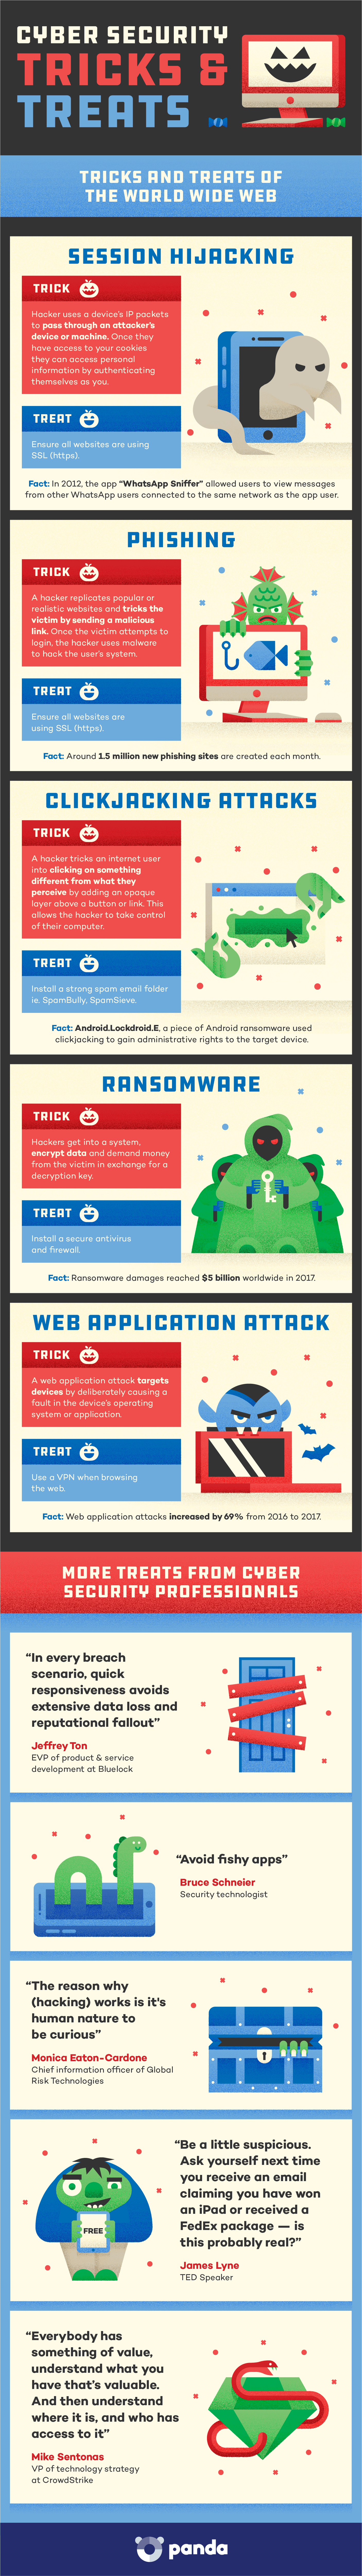 Cyber Security Tricks and Treats - Panda Security